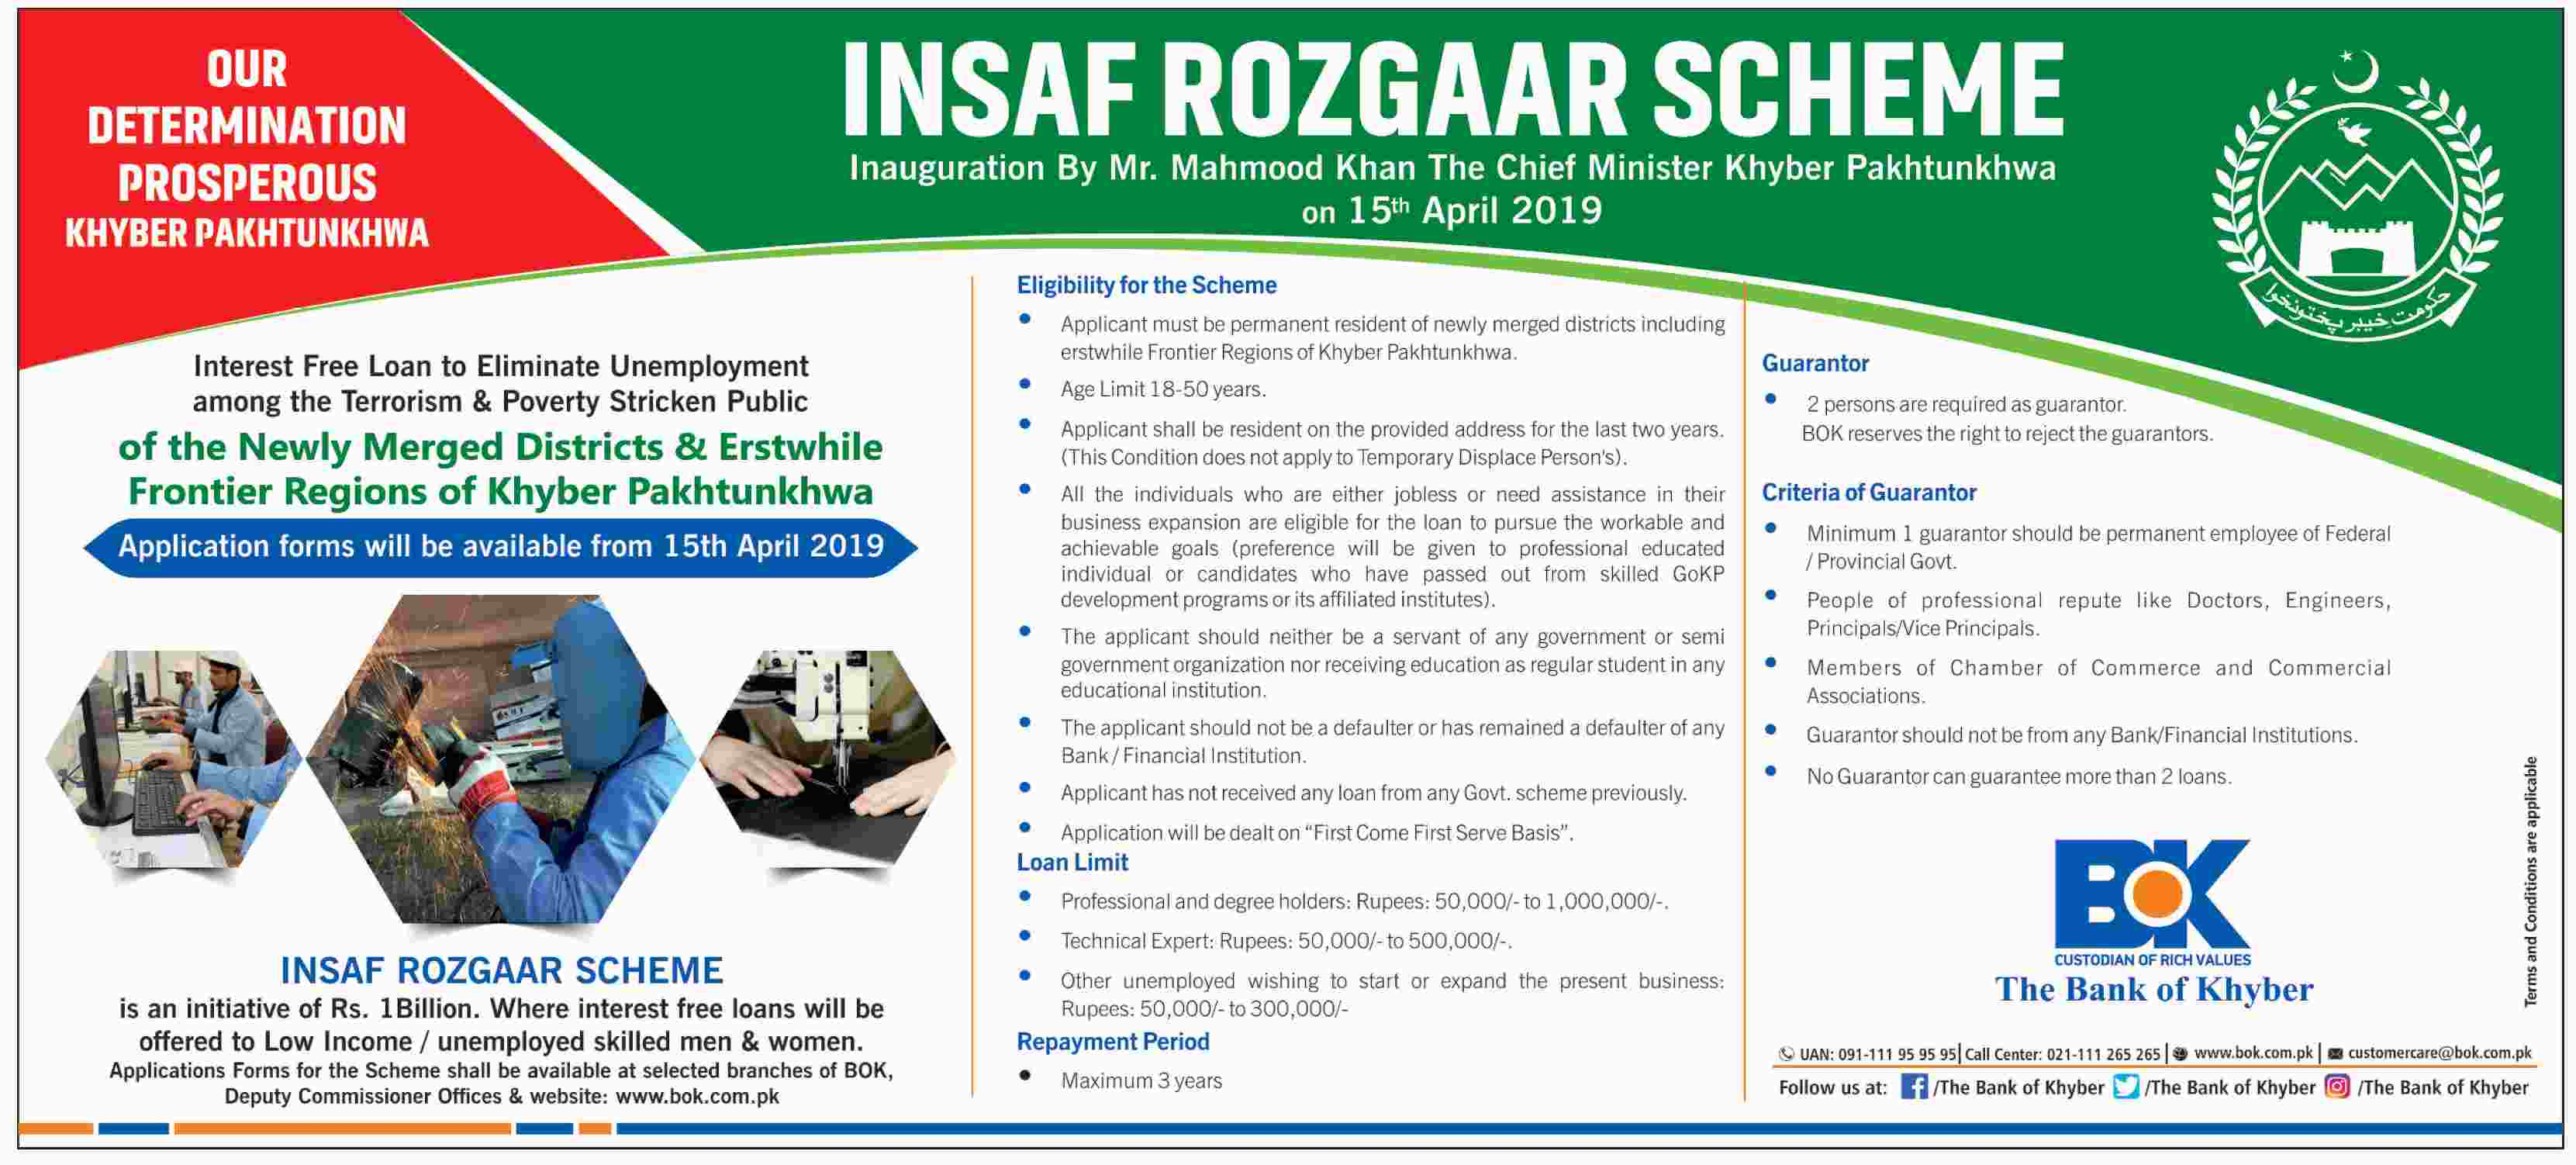 KPK Insaf Rozgar Scheme 2019 Application Form Eligibility Criteria